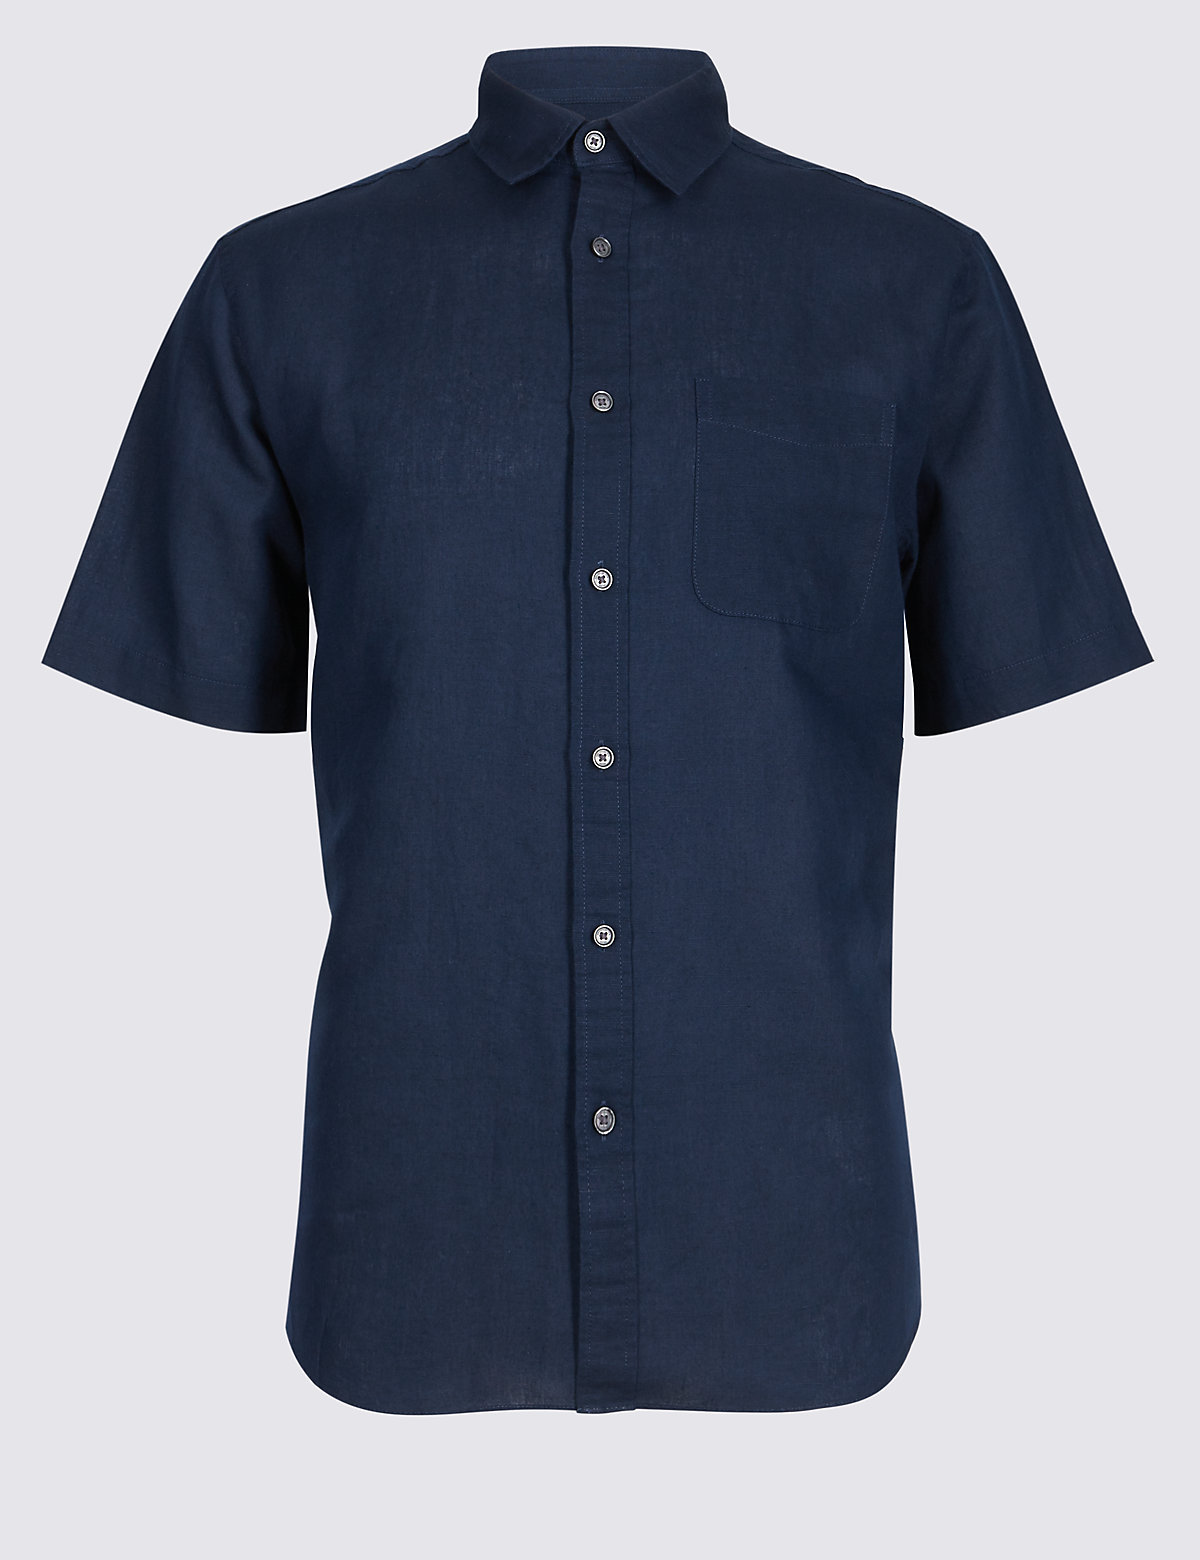 Marks & Spencer Navy Linen Rich Shirt with Pocket